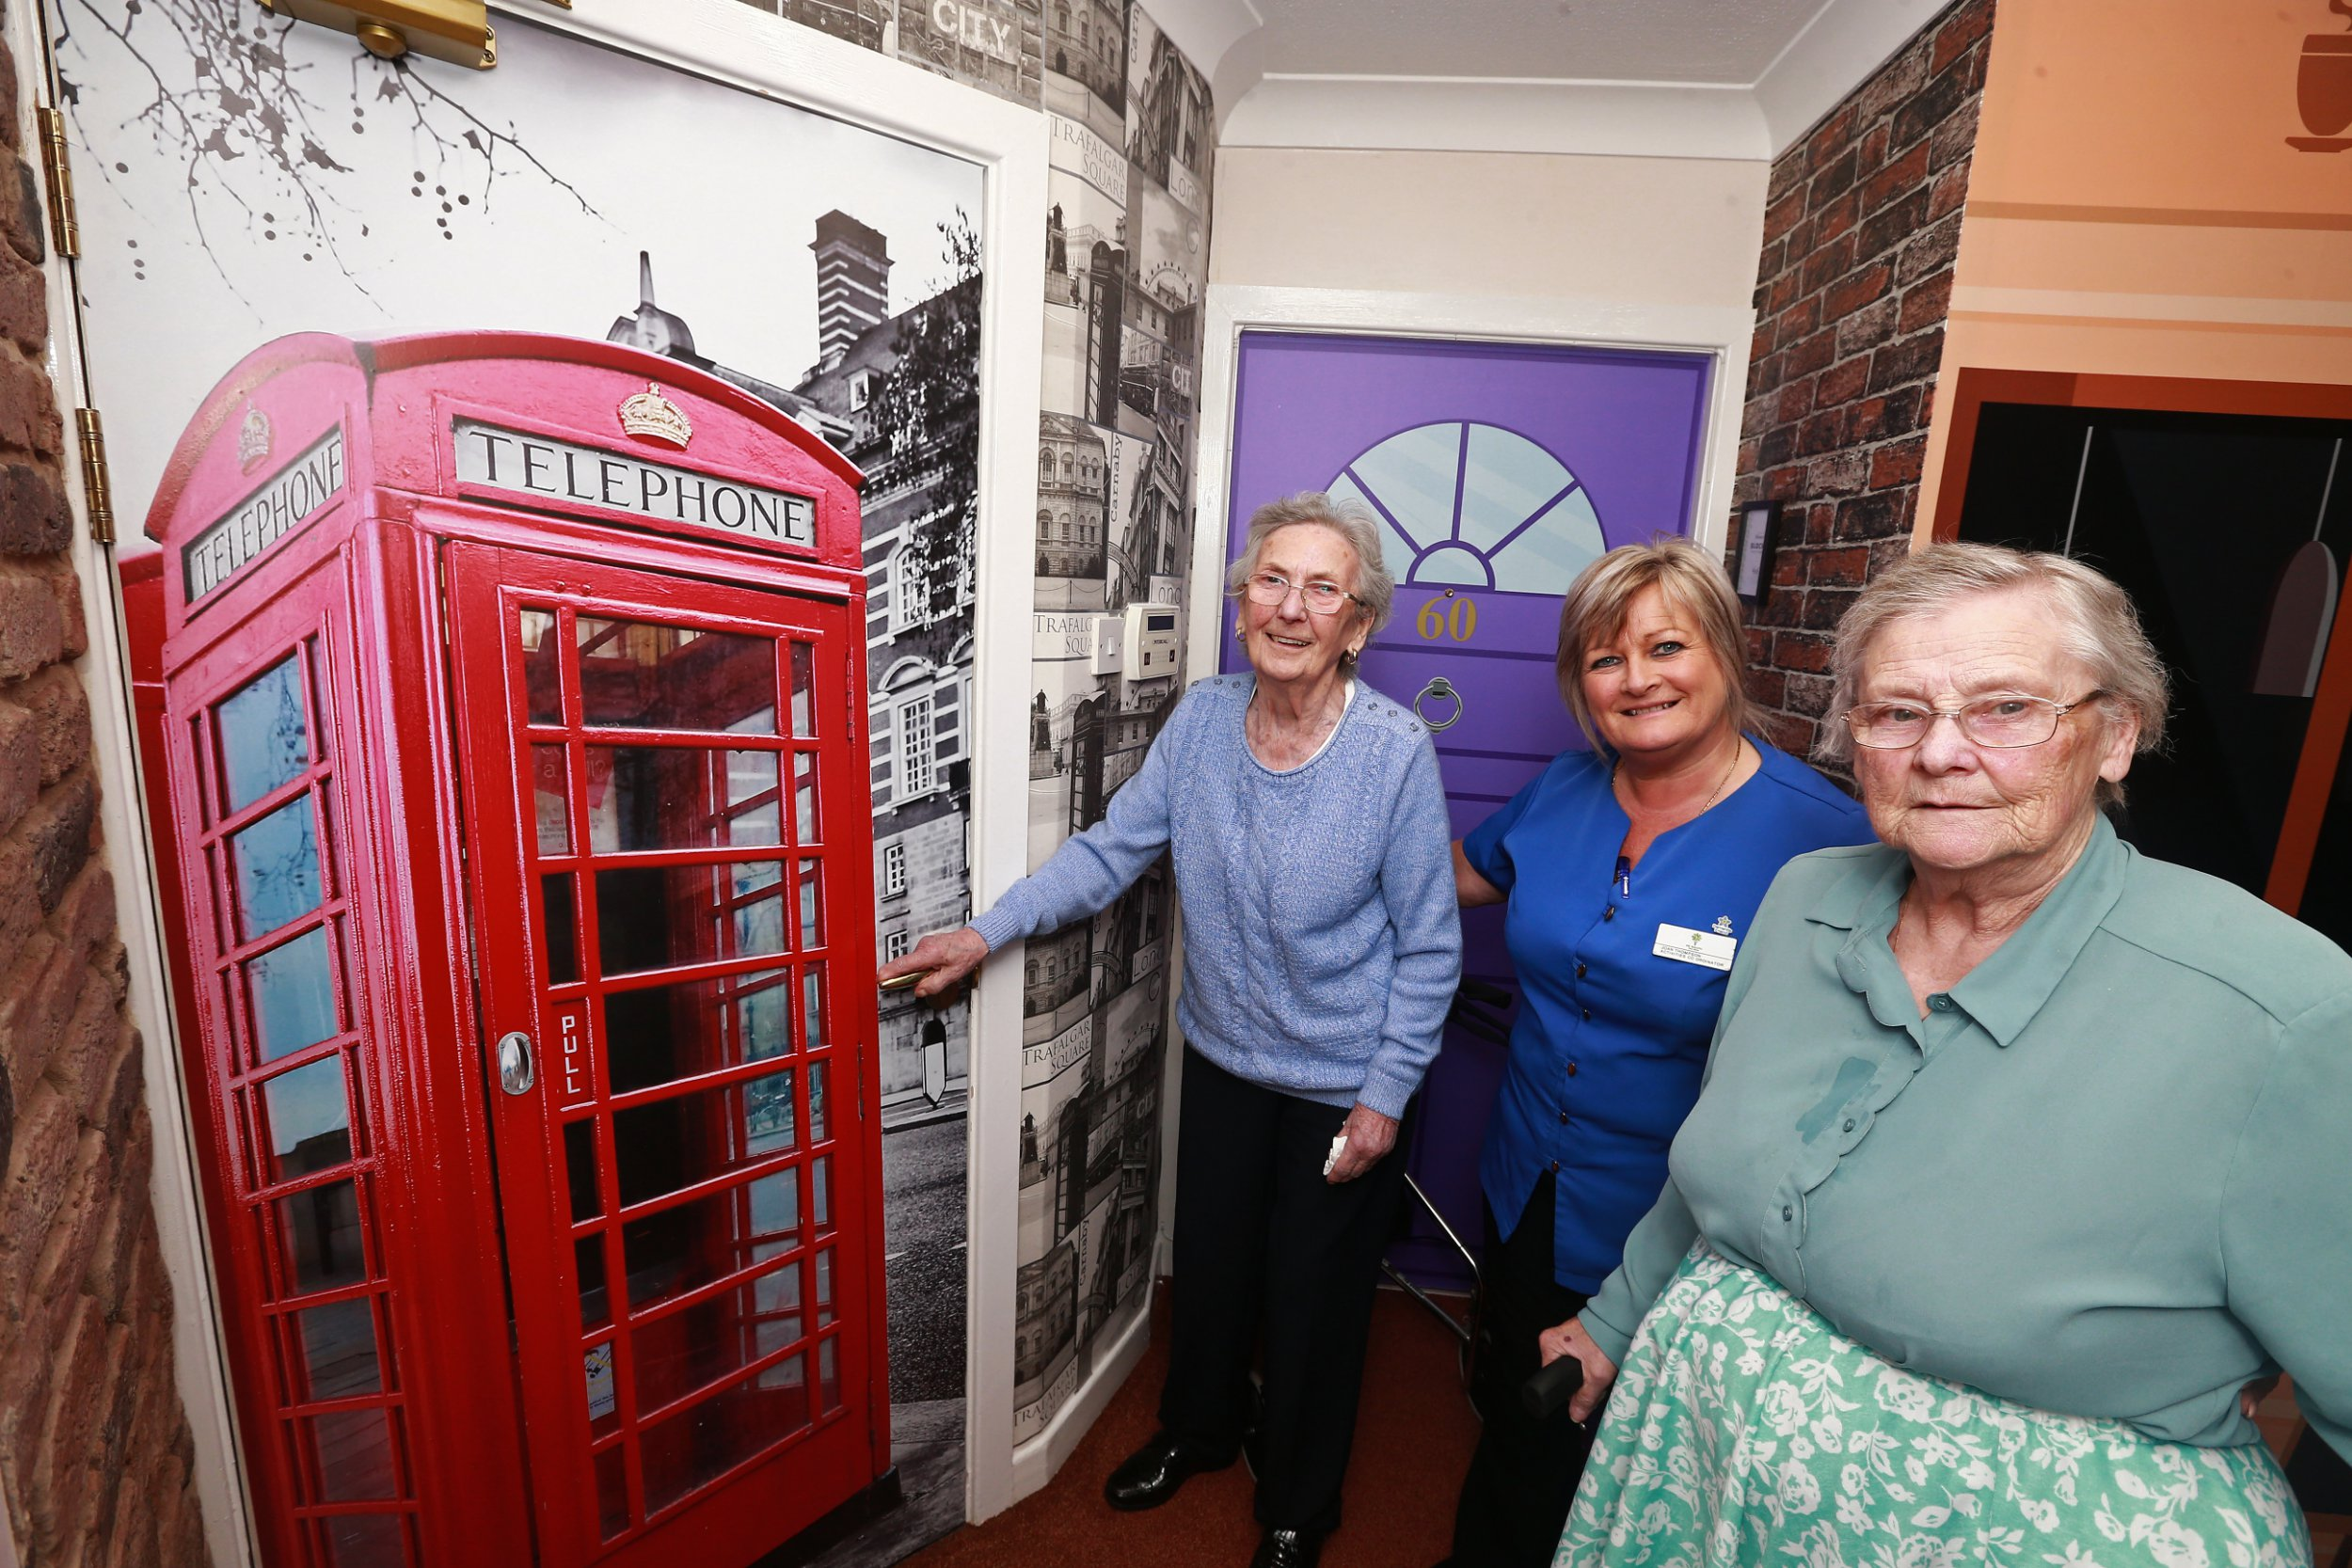 Stepping into this care home has become a trip back in time, thanks to a new unit specially designed to help recover lost memories. Corridors in De Baliol Care Home, in Newbiggin by the Sea, Northumberland, have been transformed to mimic the Northumberland of the 1940s and 50s - when many of the home?s residents were in their prime. They feature colourful views of the seaside from ?windows?, old-fashioned shop fronts, and the entrances to bedrooms transformed into proper ?front doors?. It?s intended to help residents suffering with dementia, by providing a familiar and pleasant environment which echoes memories of the past they may be starting to lose.